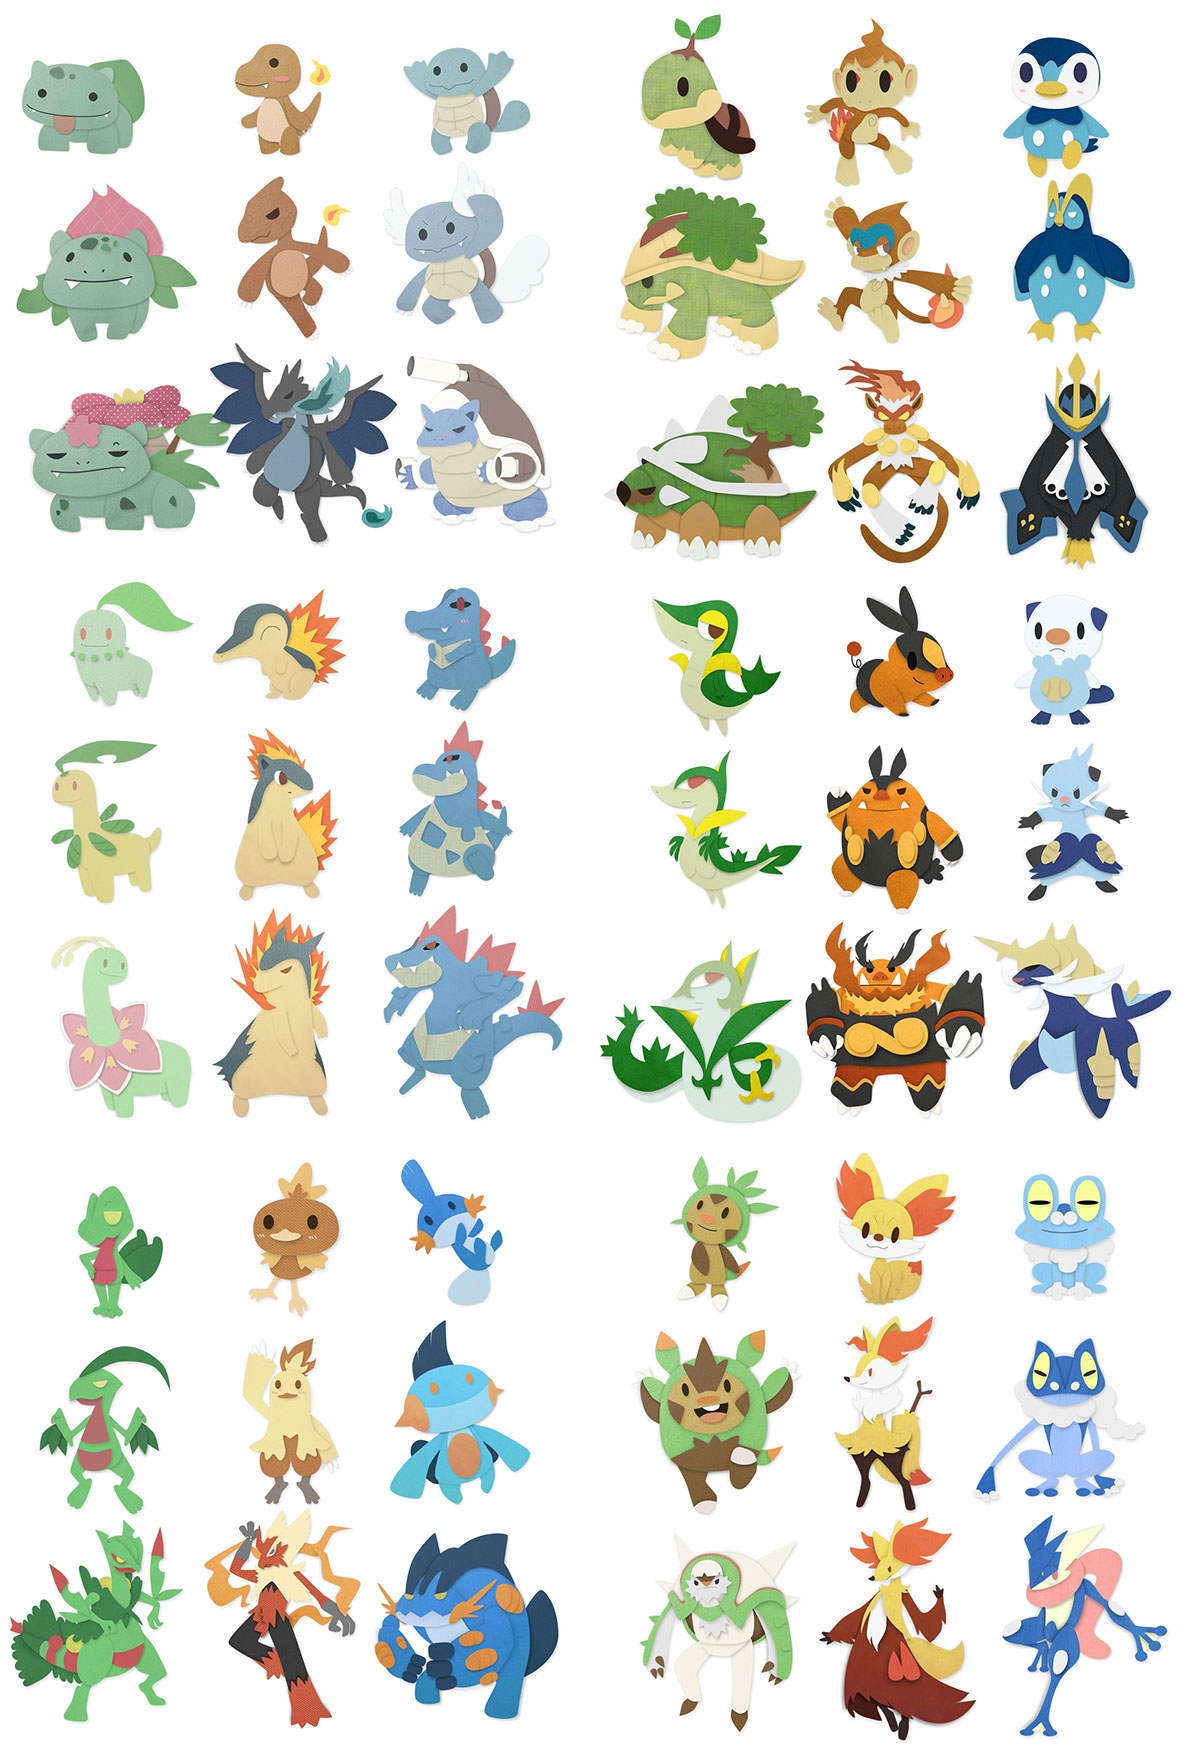 6 generations of pokémon starters on behance